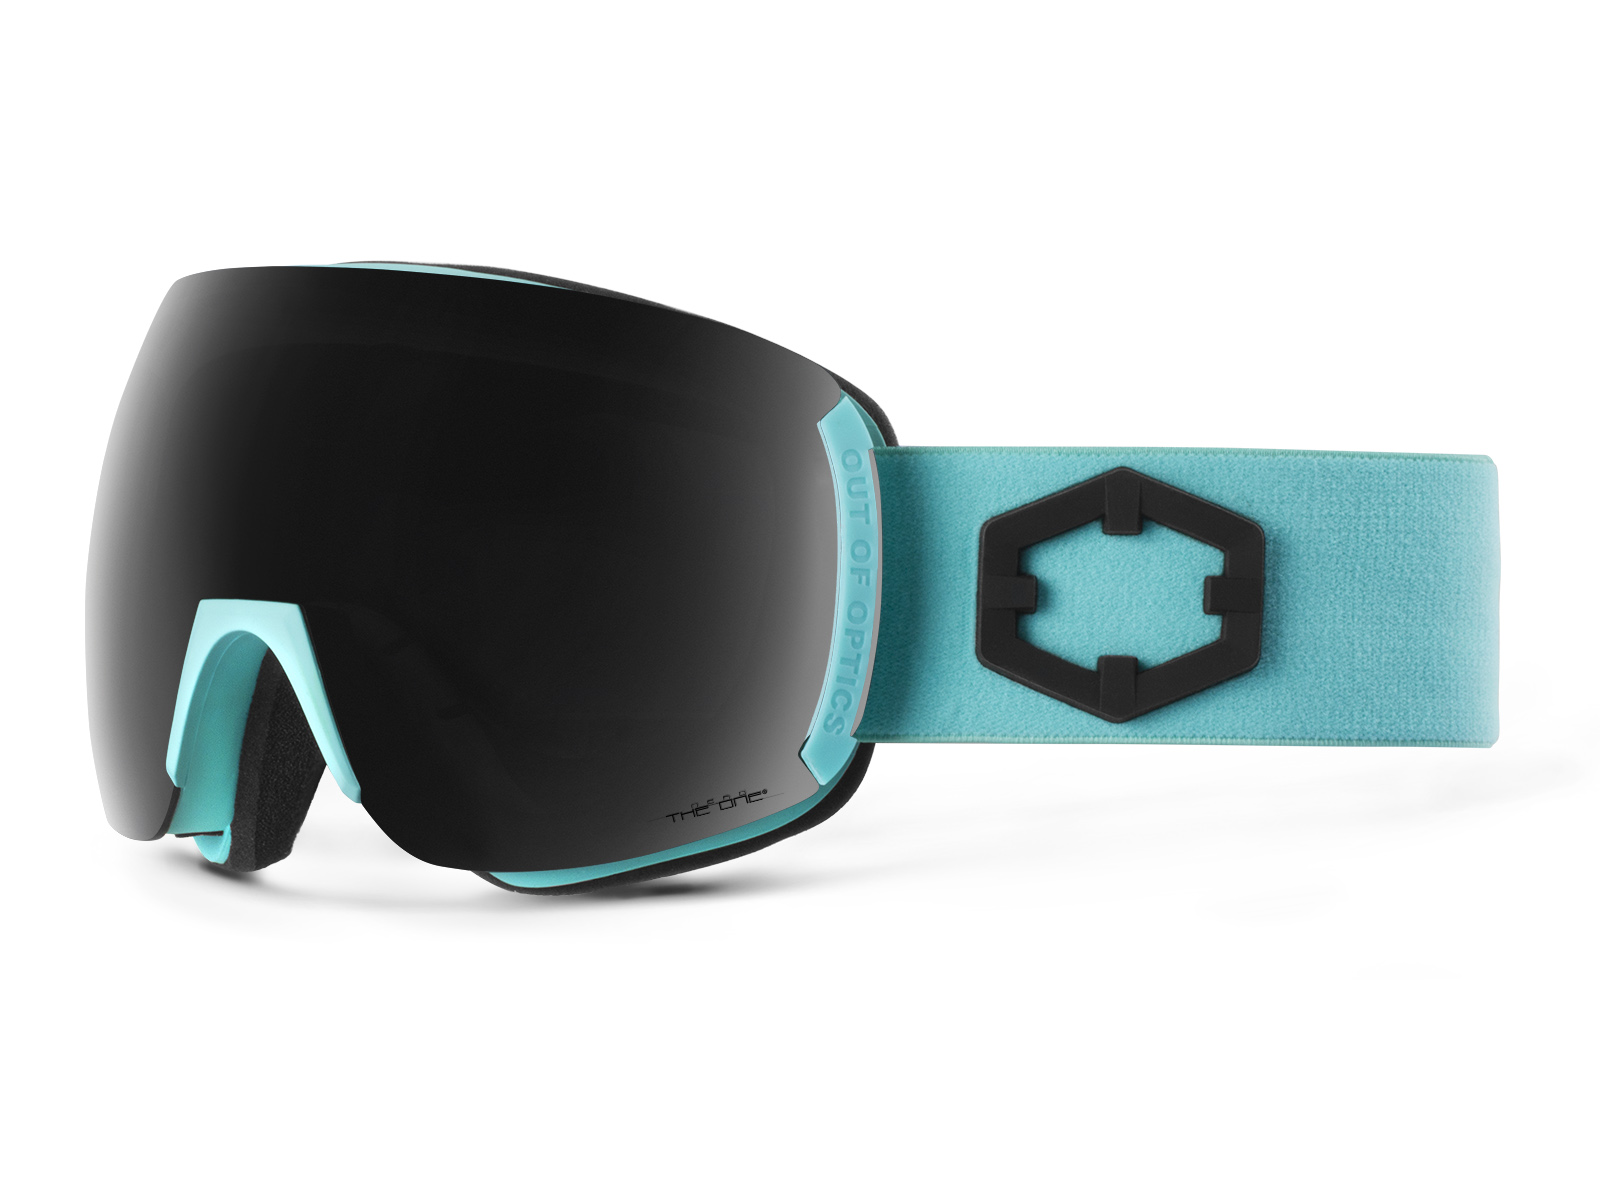 EARTH TURQUOISE THE ONE NERO GOGGLE